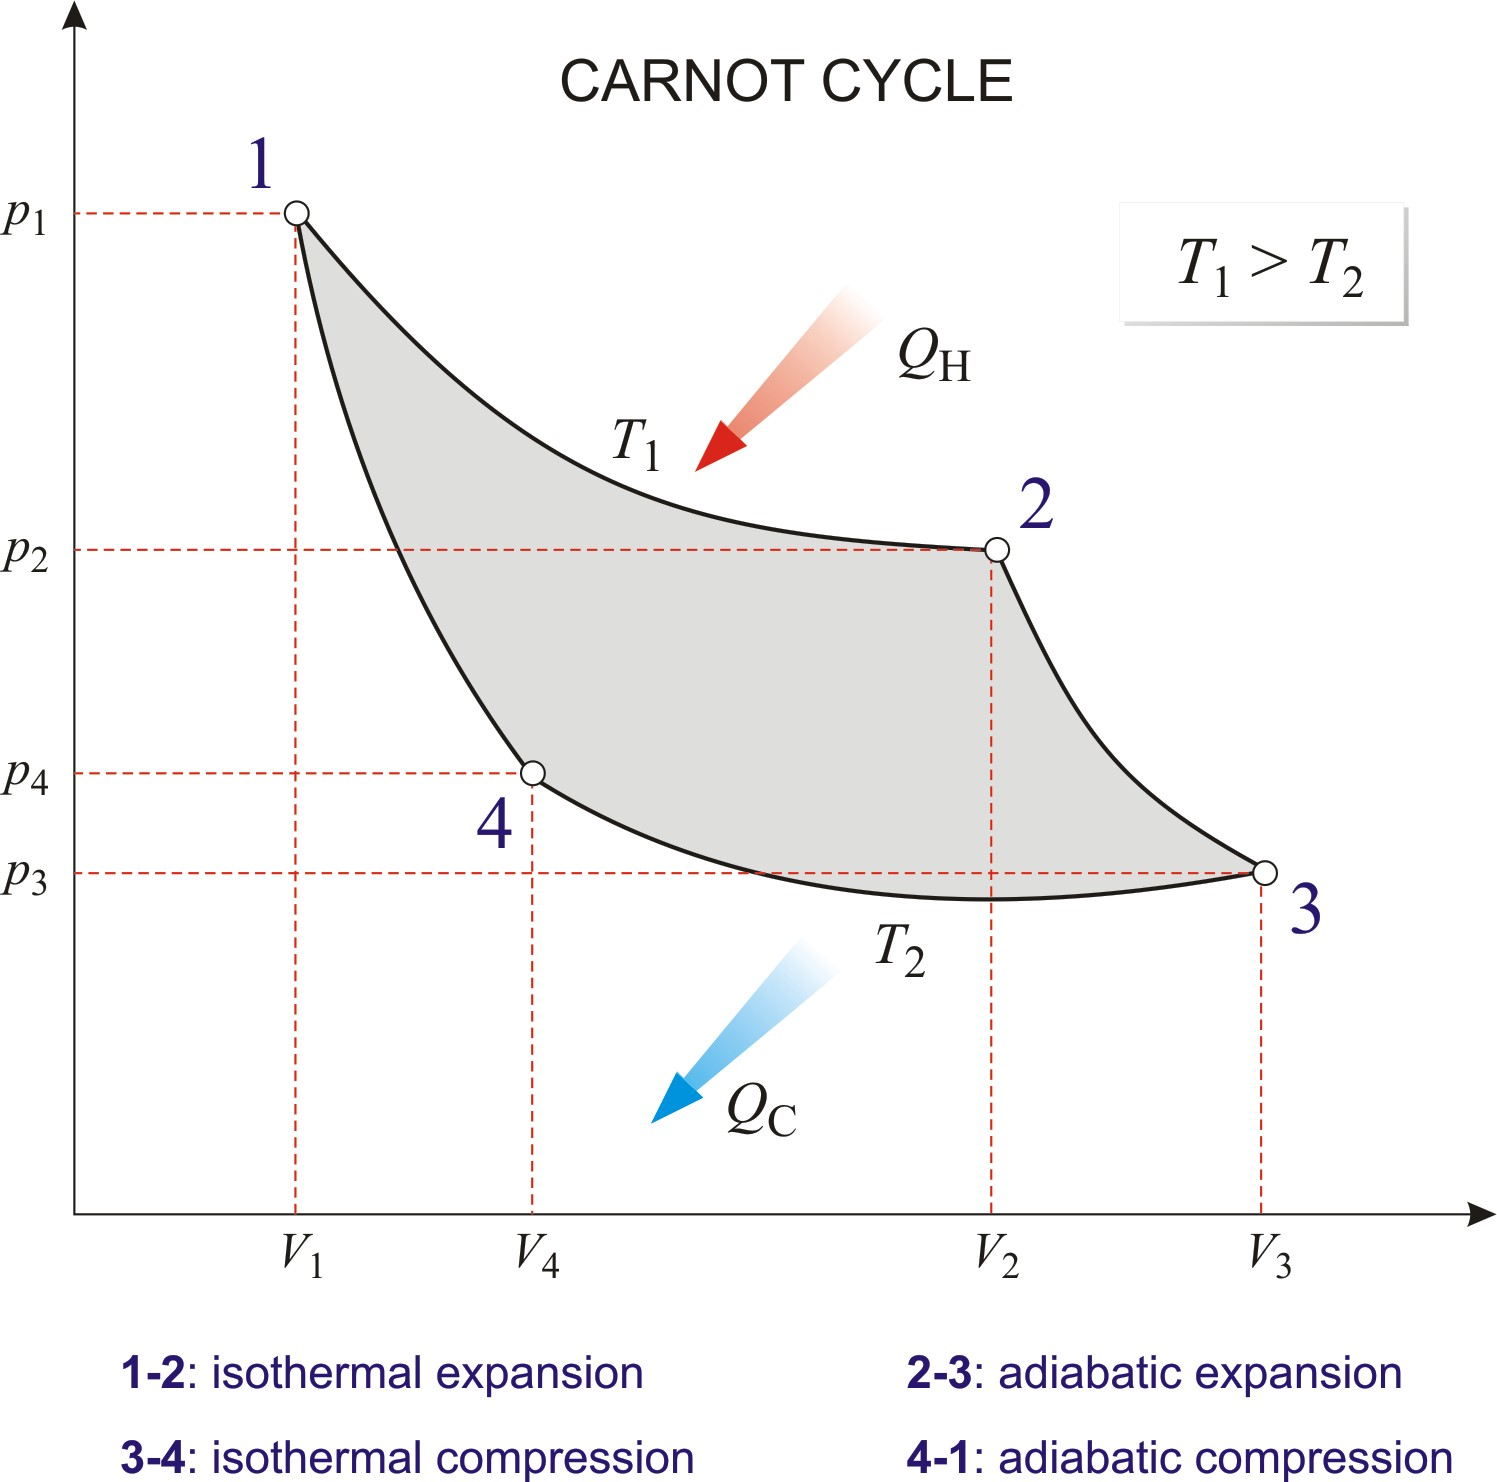 Carnot Engine Pv Diagram Carnot Cycle Chemistry Dictionary & Glossary Of Carnot Engine Pv Diagram